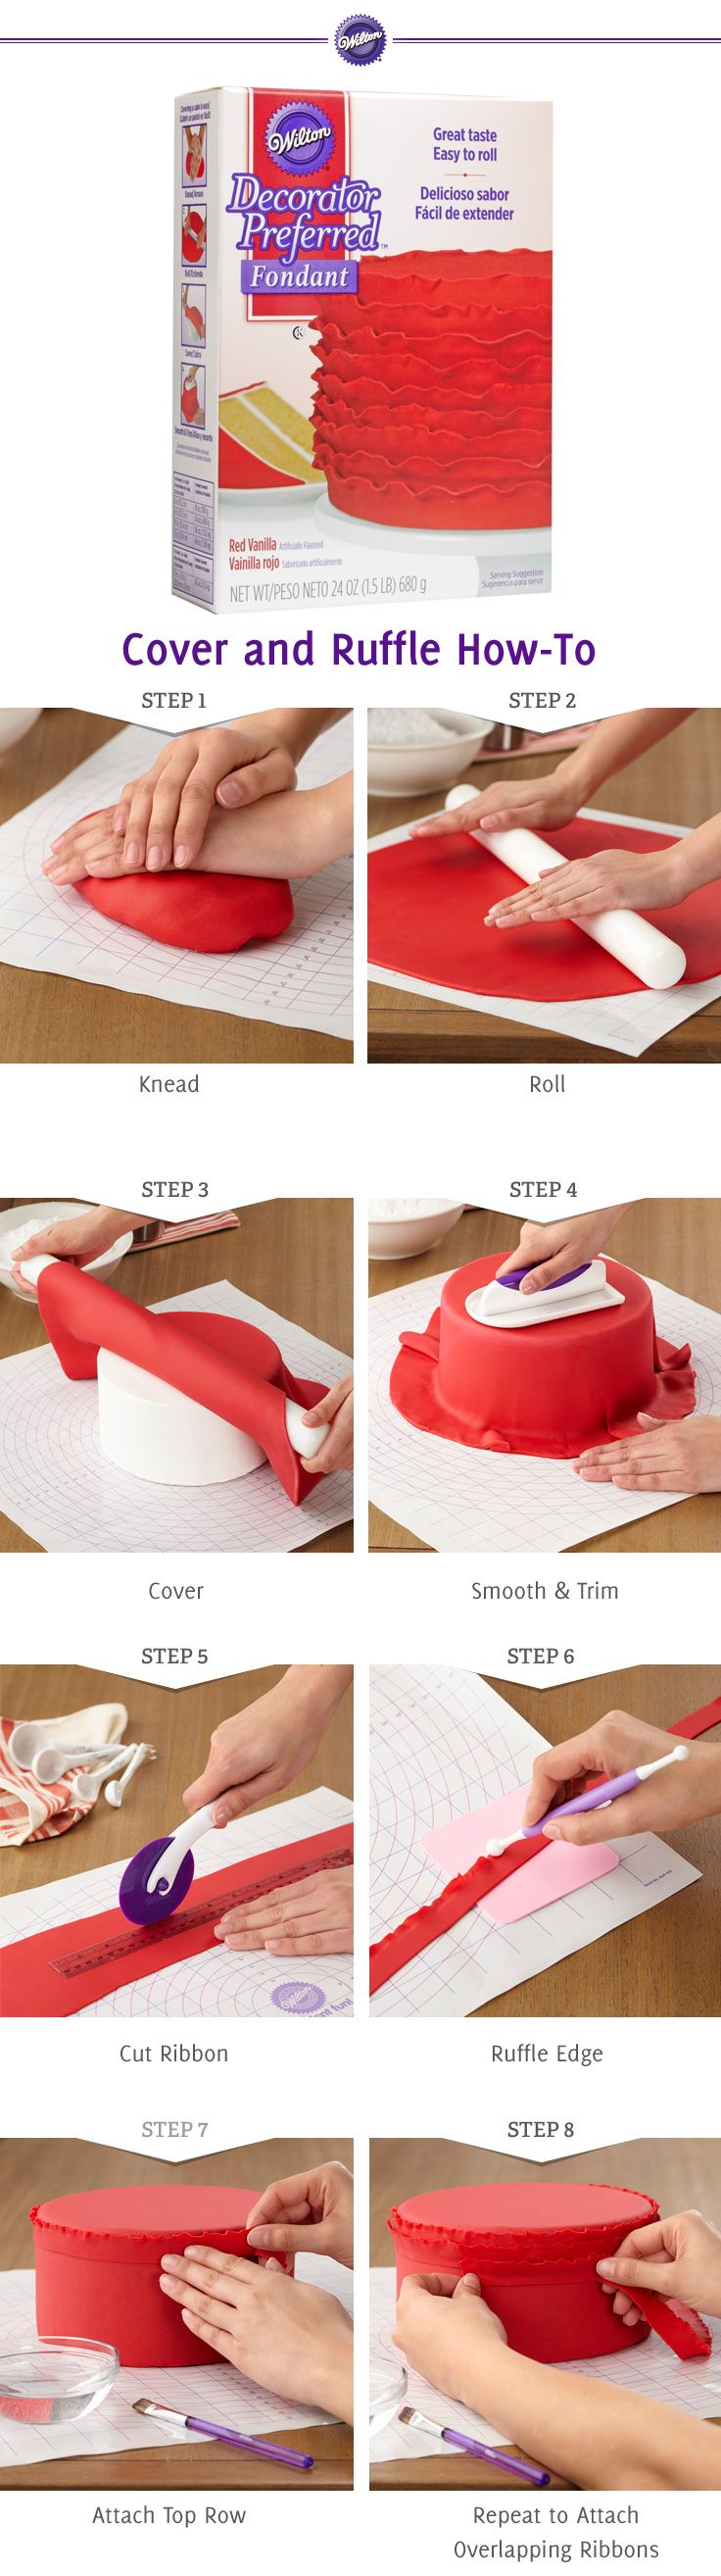 Create Ruffles with Fondant  Wilton Cake Decorating Kit